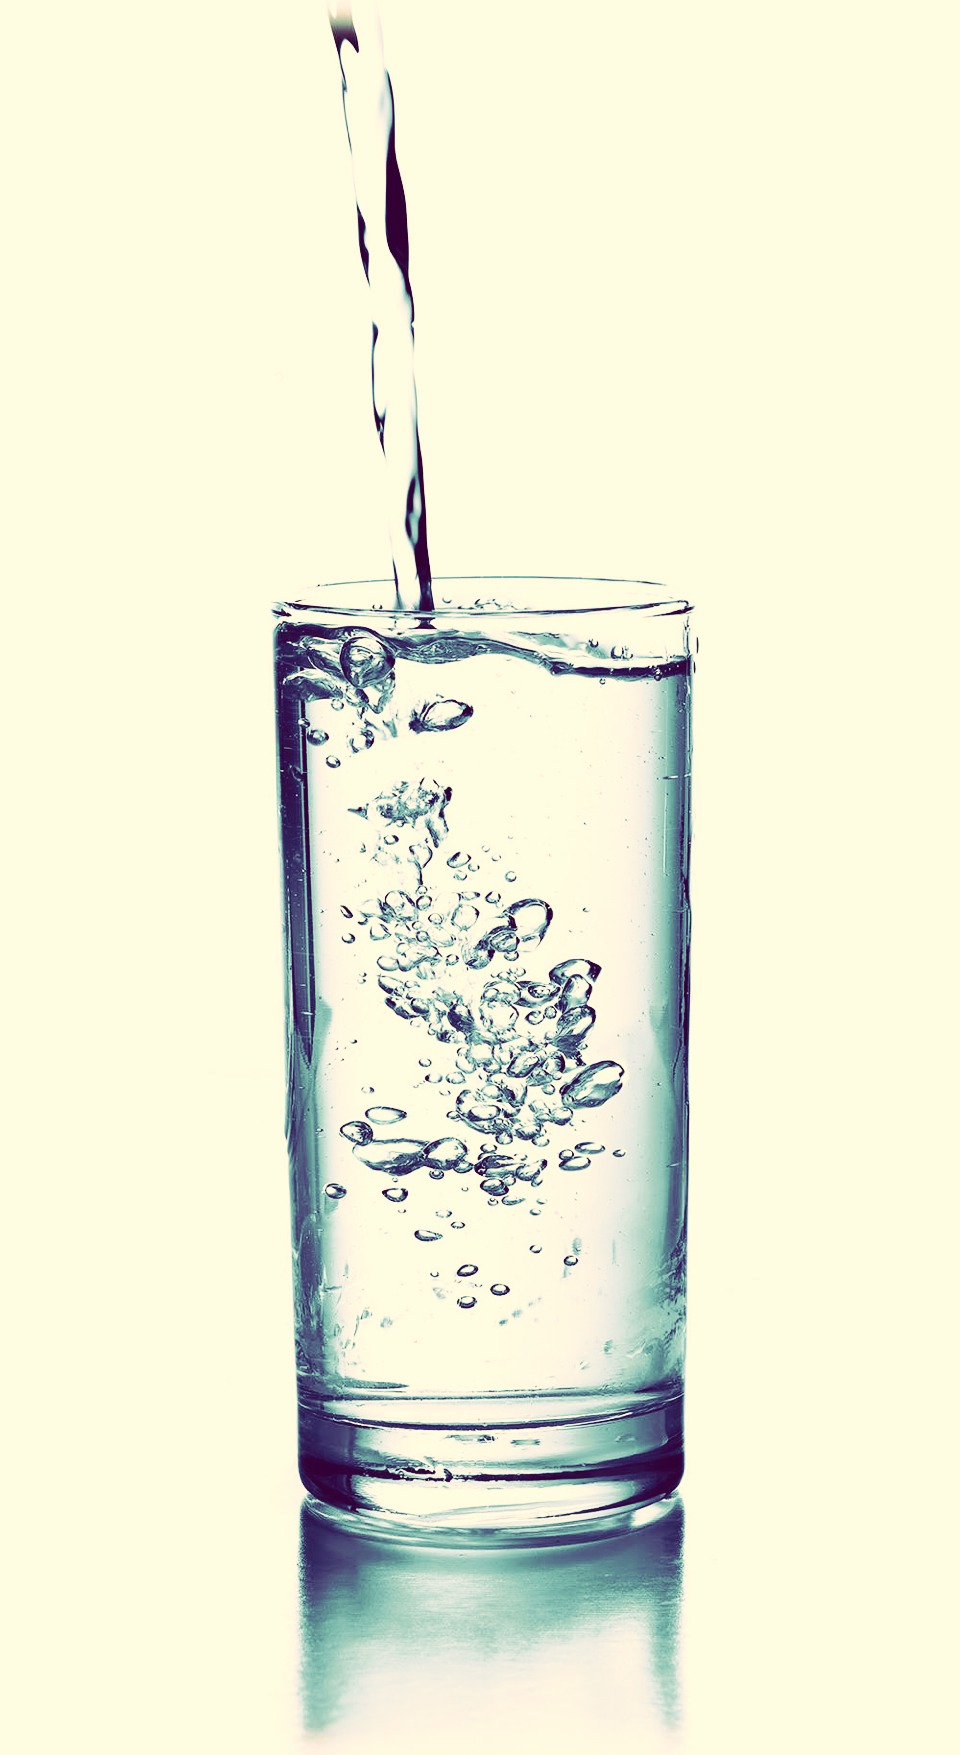 Start by poring some Brita water into whatever drinking container, glass, or whatever you are using. *you can also use to So water if you'd like*